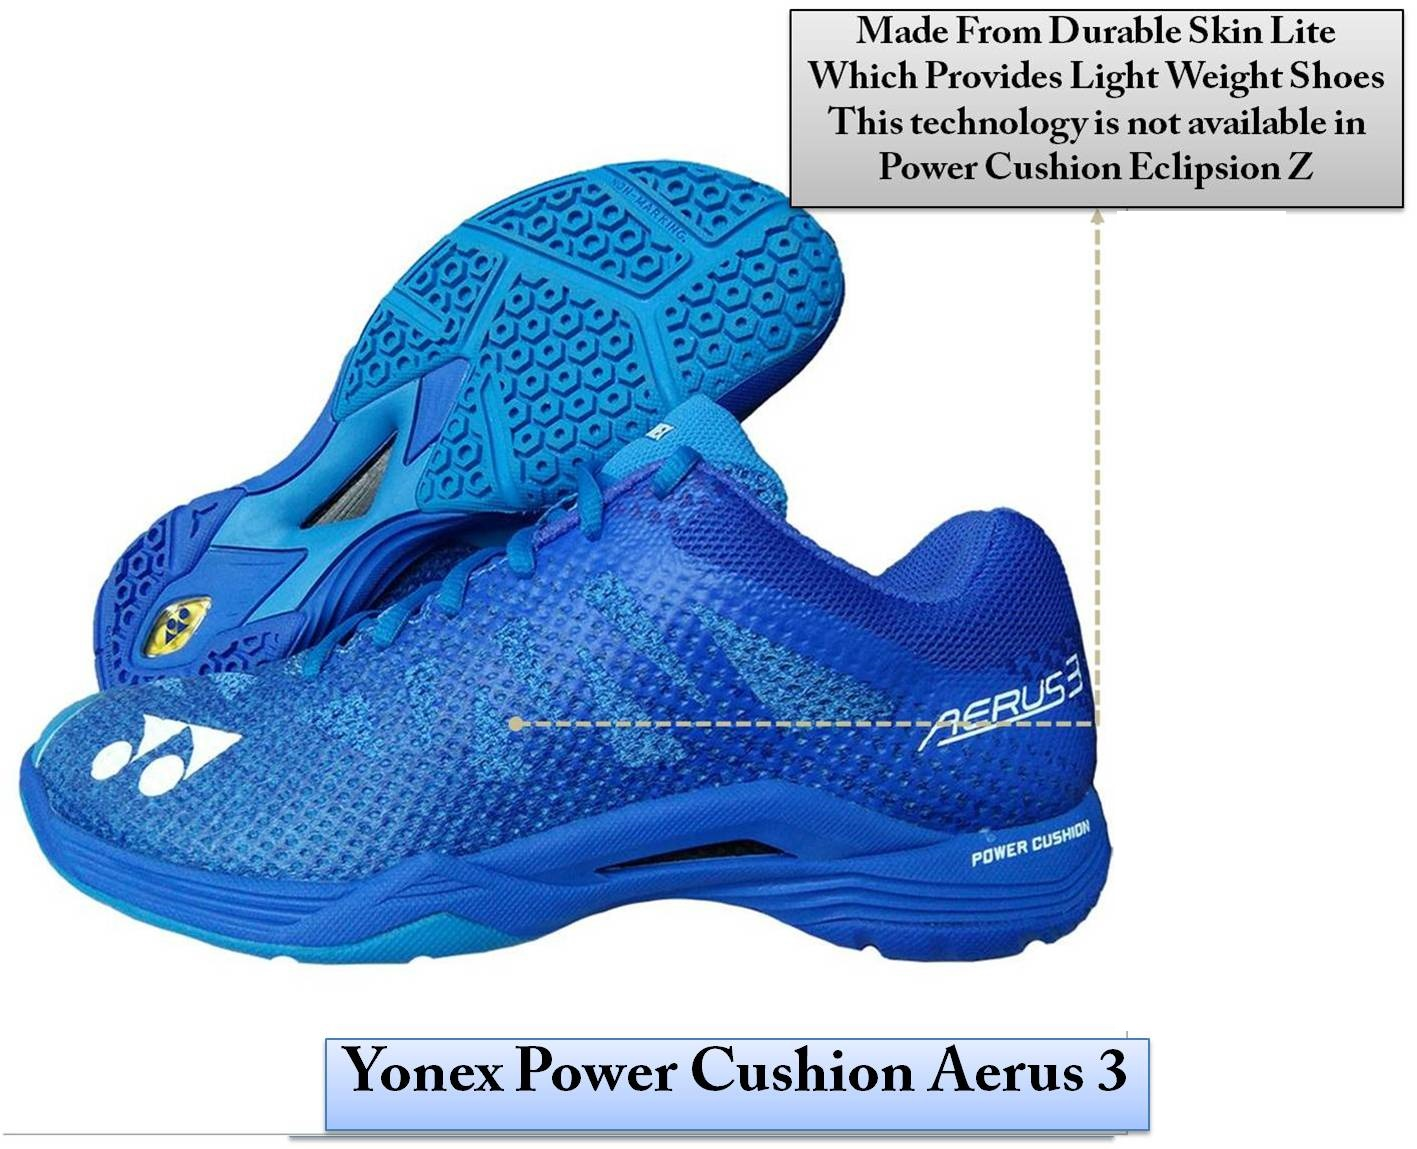 Yonex_Power_Cushion_Aerus_3_Imag